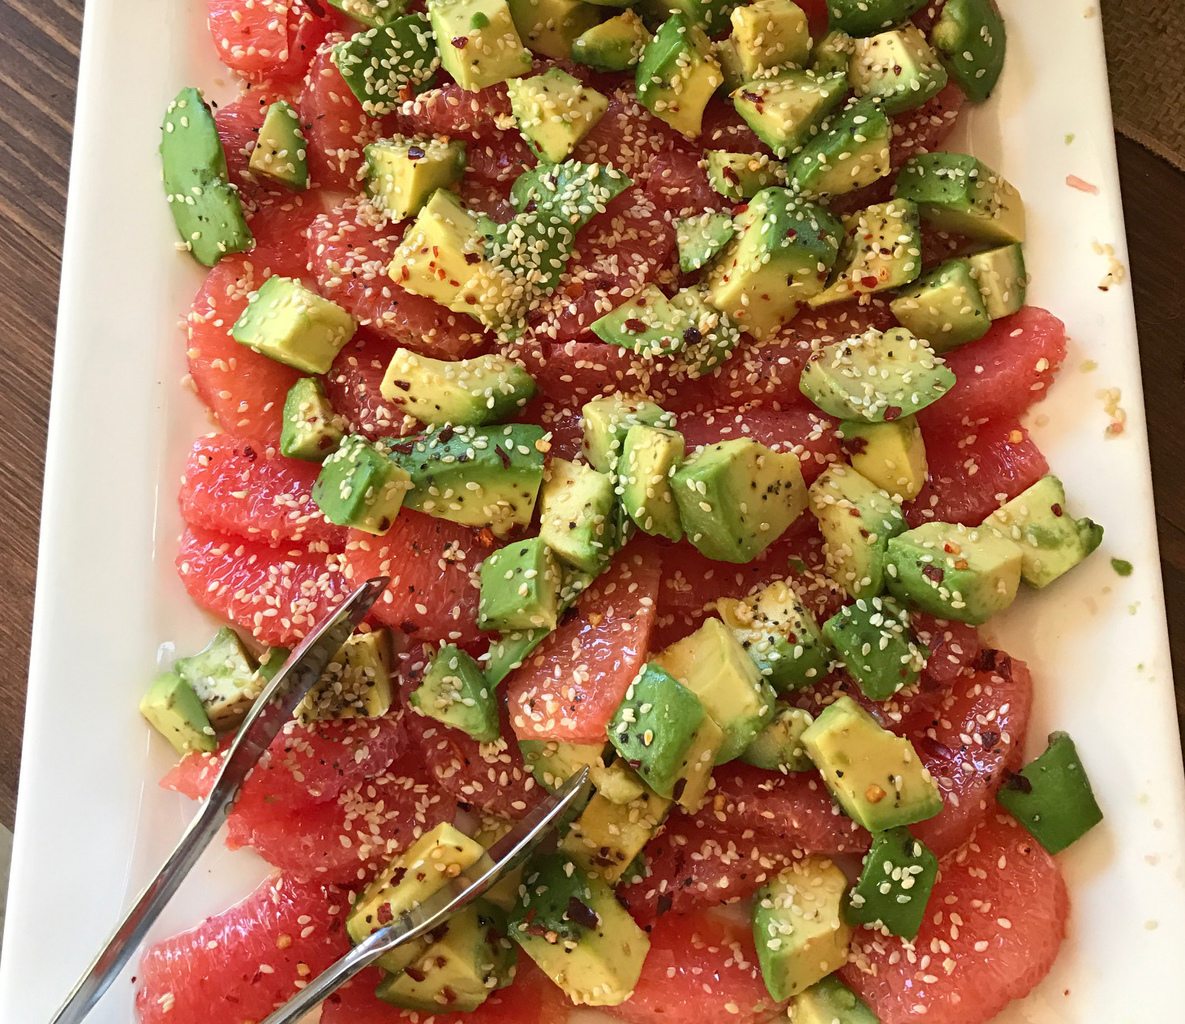 Avocados with Blood Oranges & Sesame Seeds